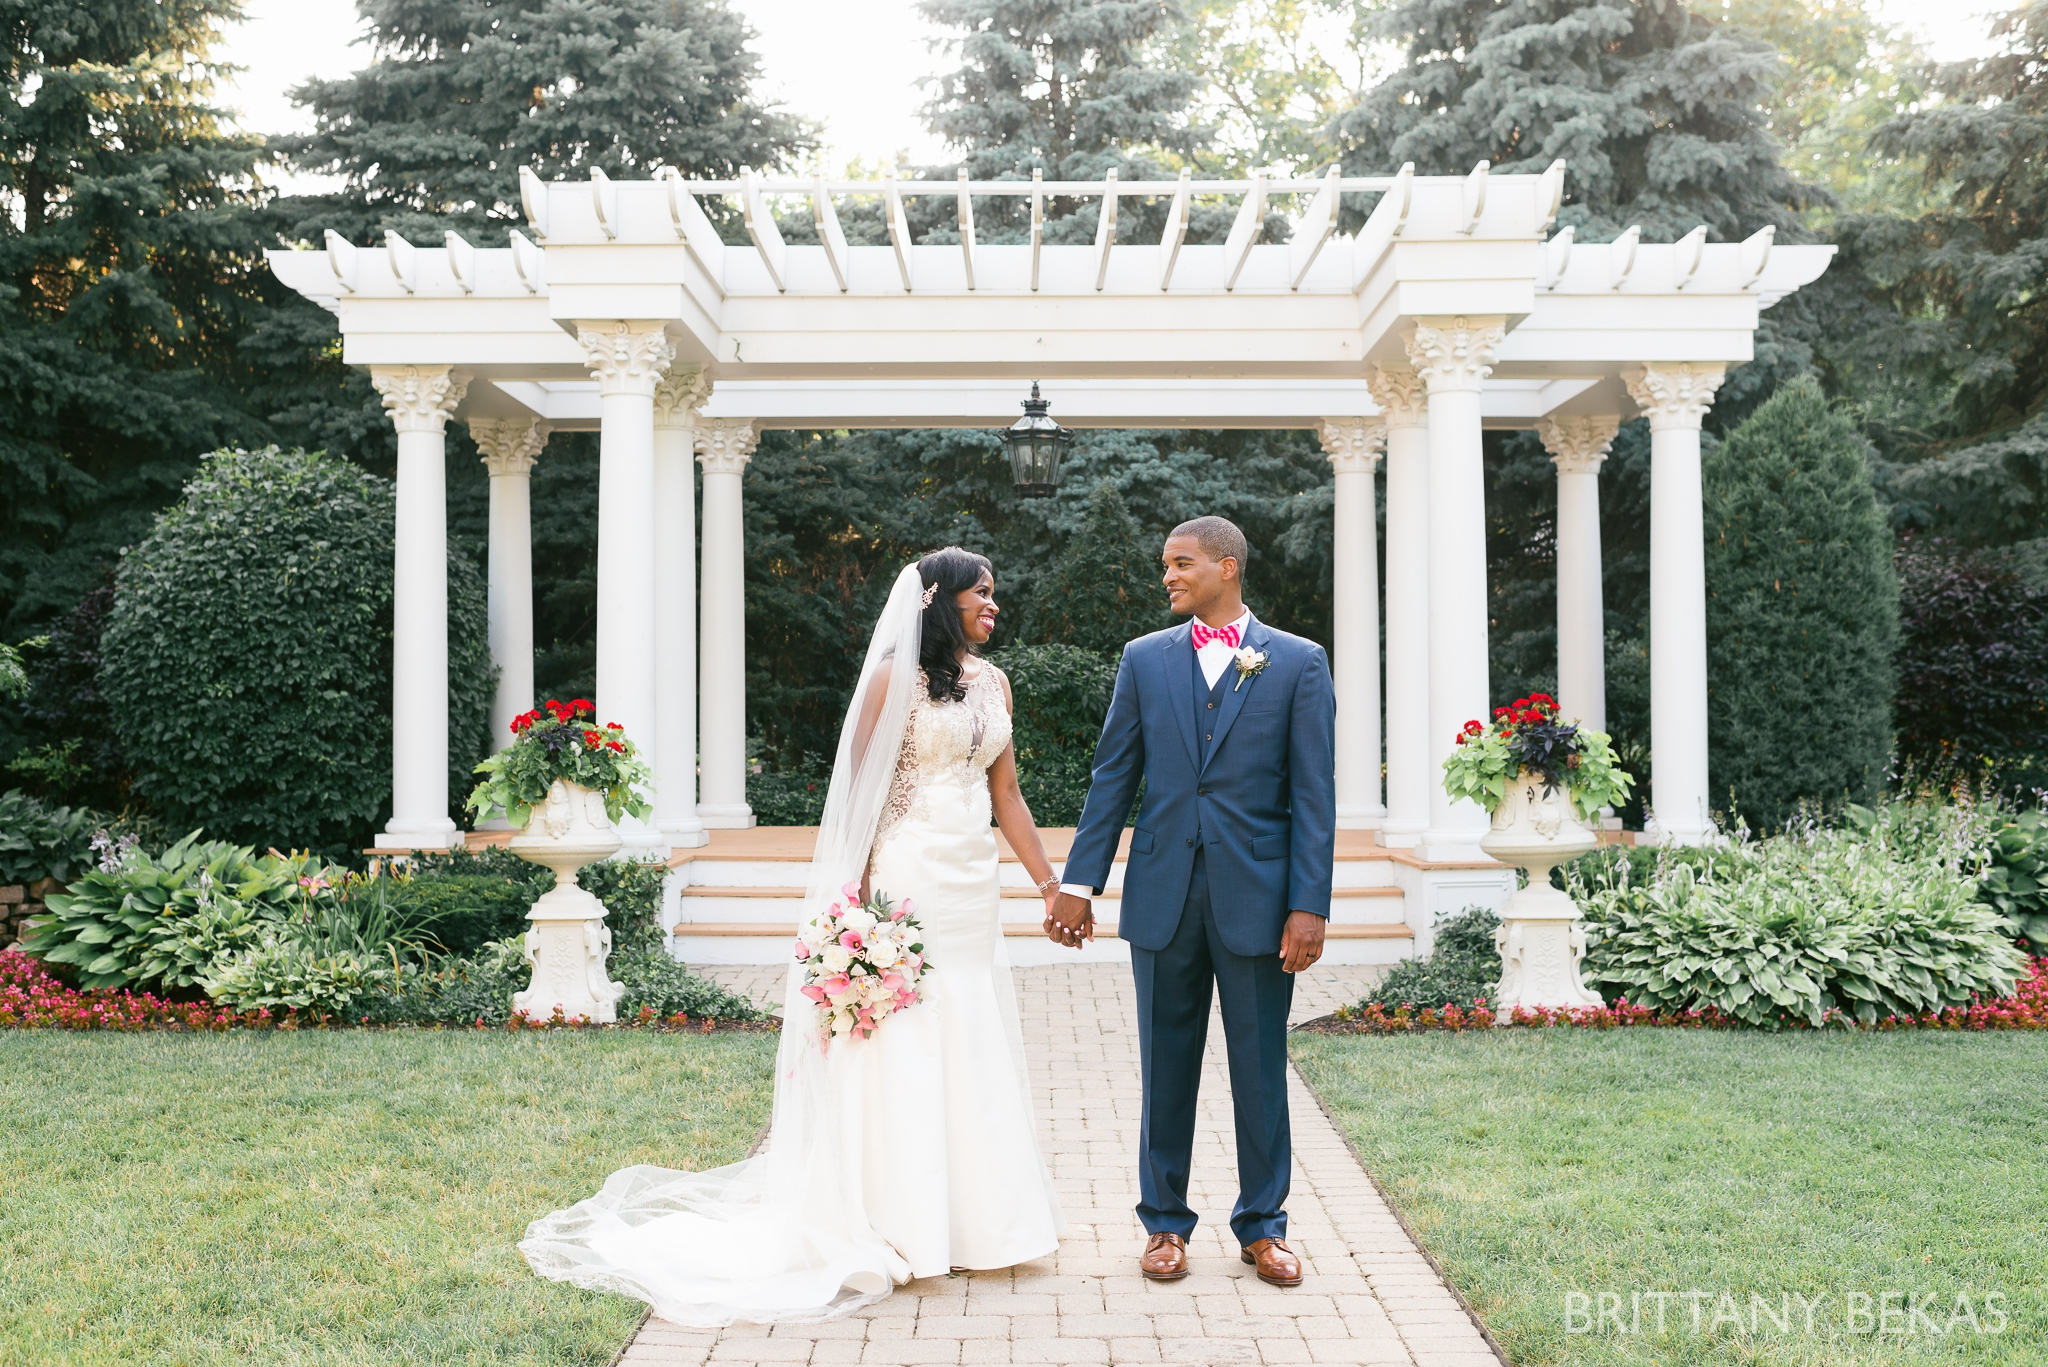 Patrick Haley Mansion Wedding - Brittany Bekas Photography_0019